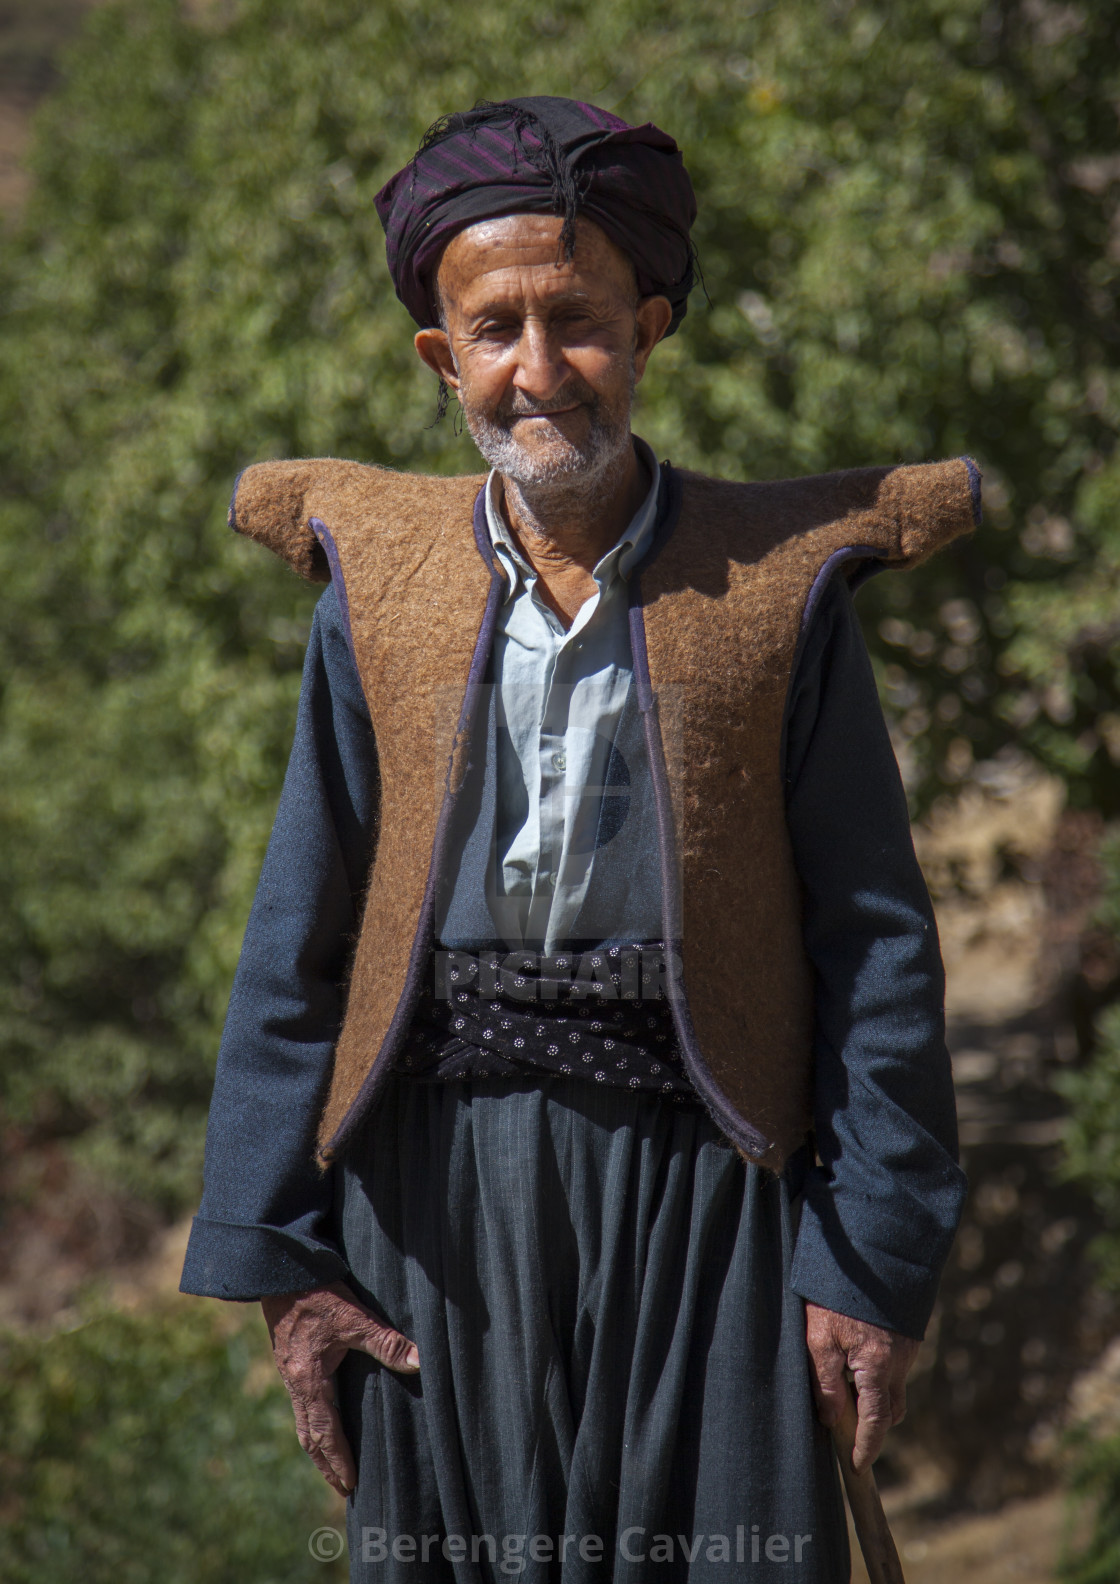 """Kurdish Old Man With Traditional Clothing, Howraman, Iran"" stock image"